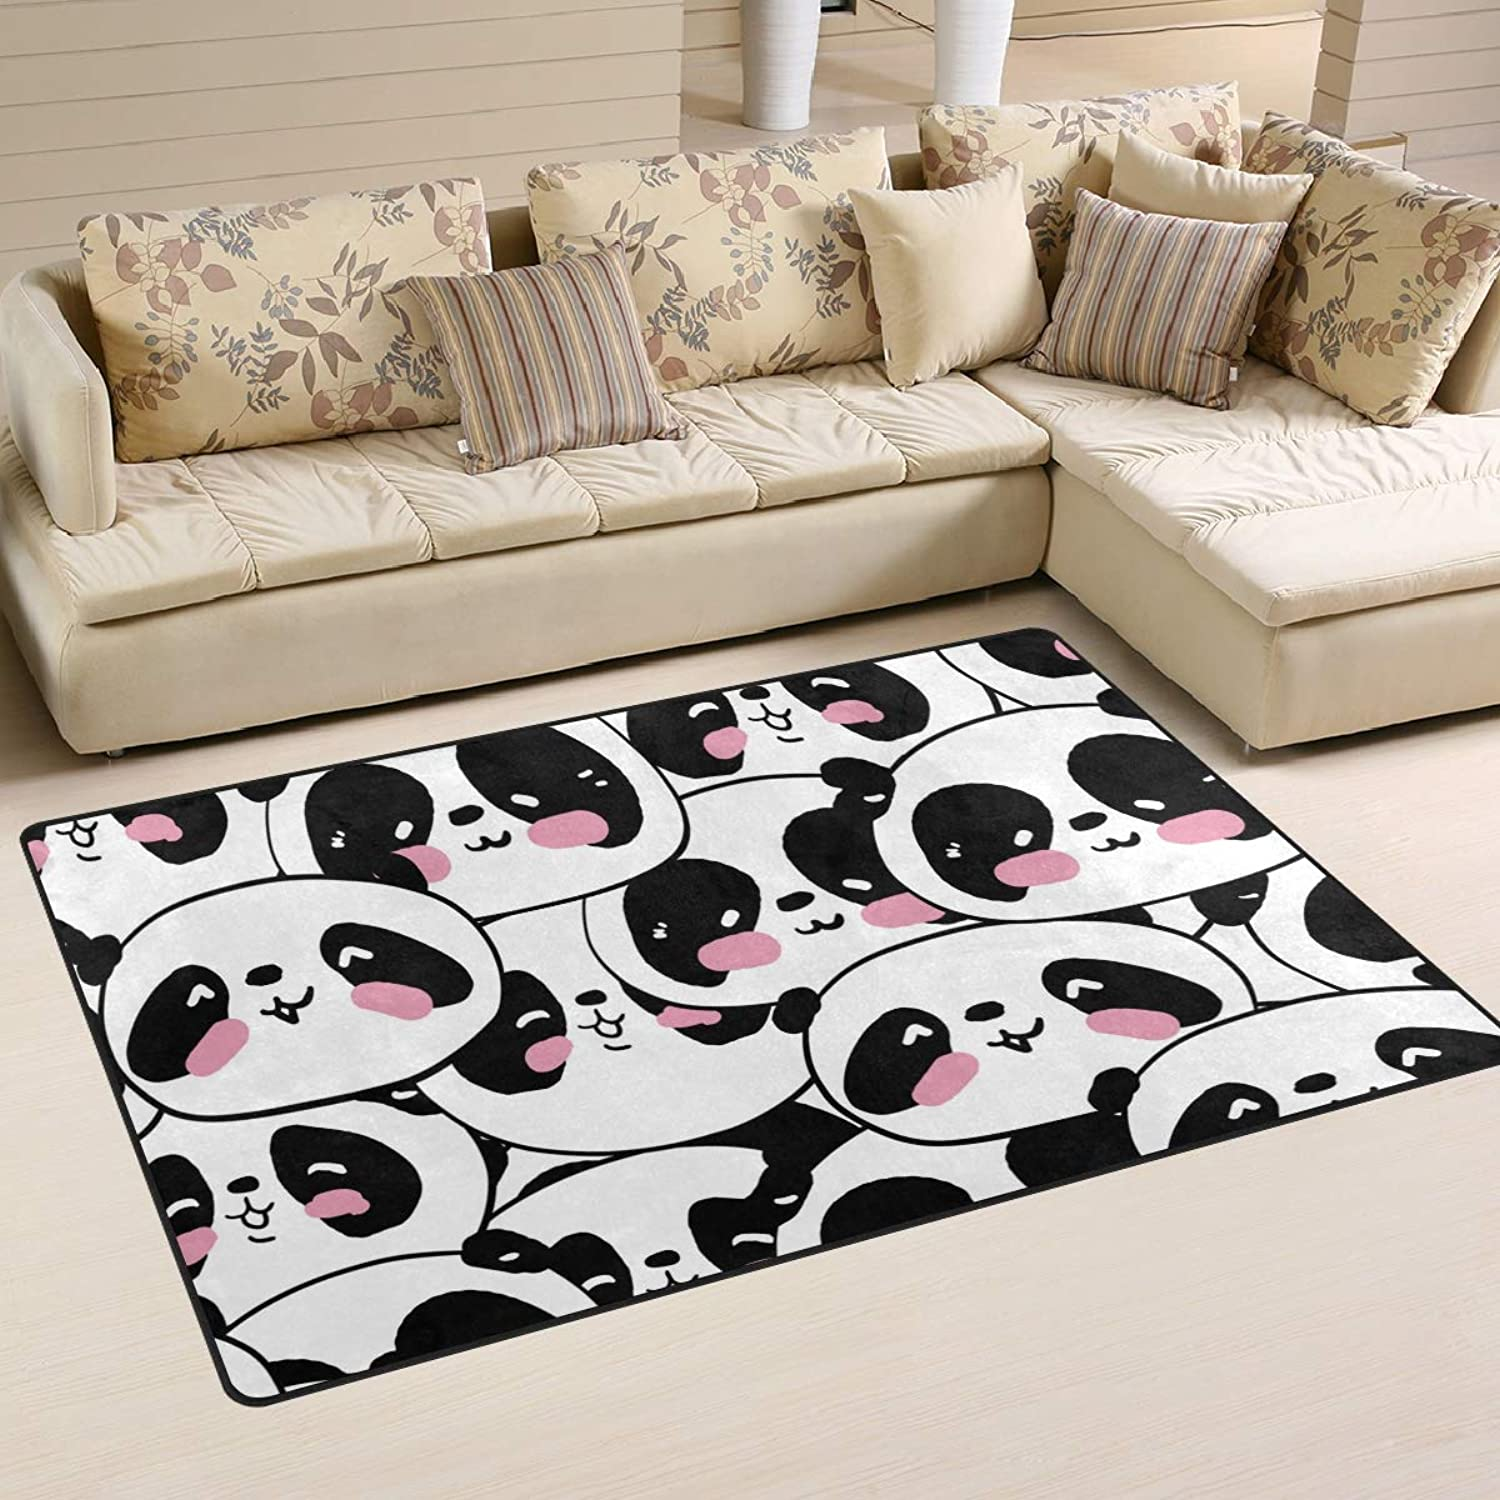 FANTAZIO Area Rug Accessories Joyous Pandas Entry doormats for Corners and Edge Anti-Curling Ideal Rug Stopper 31x20in 60x39in